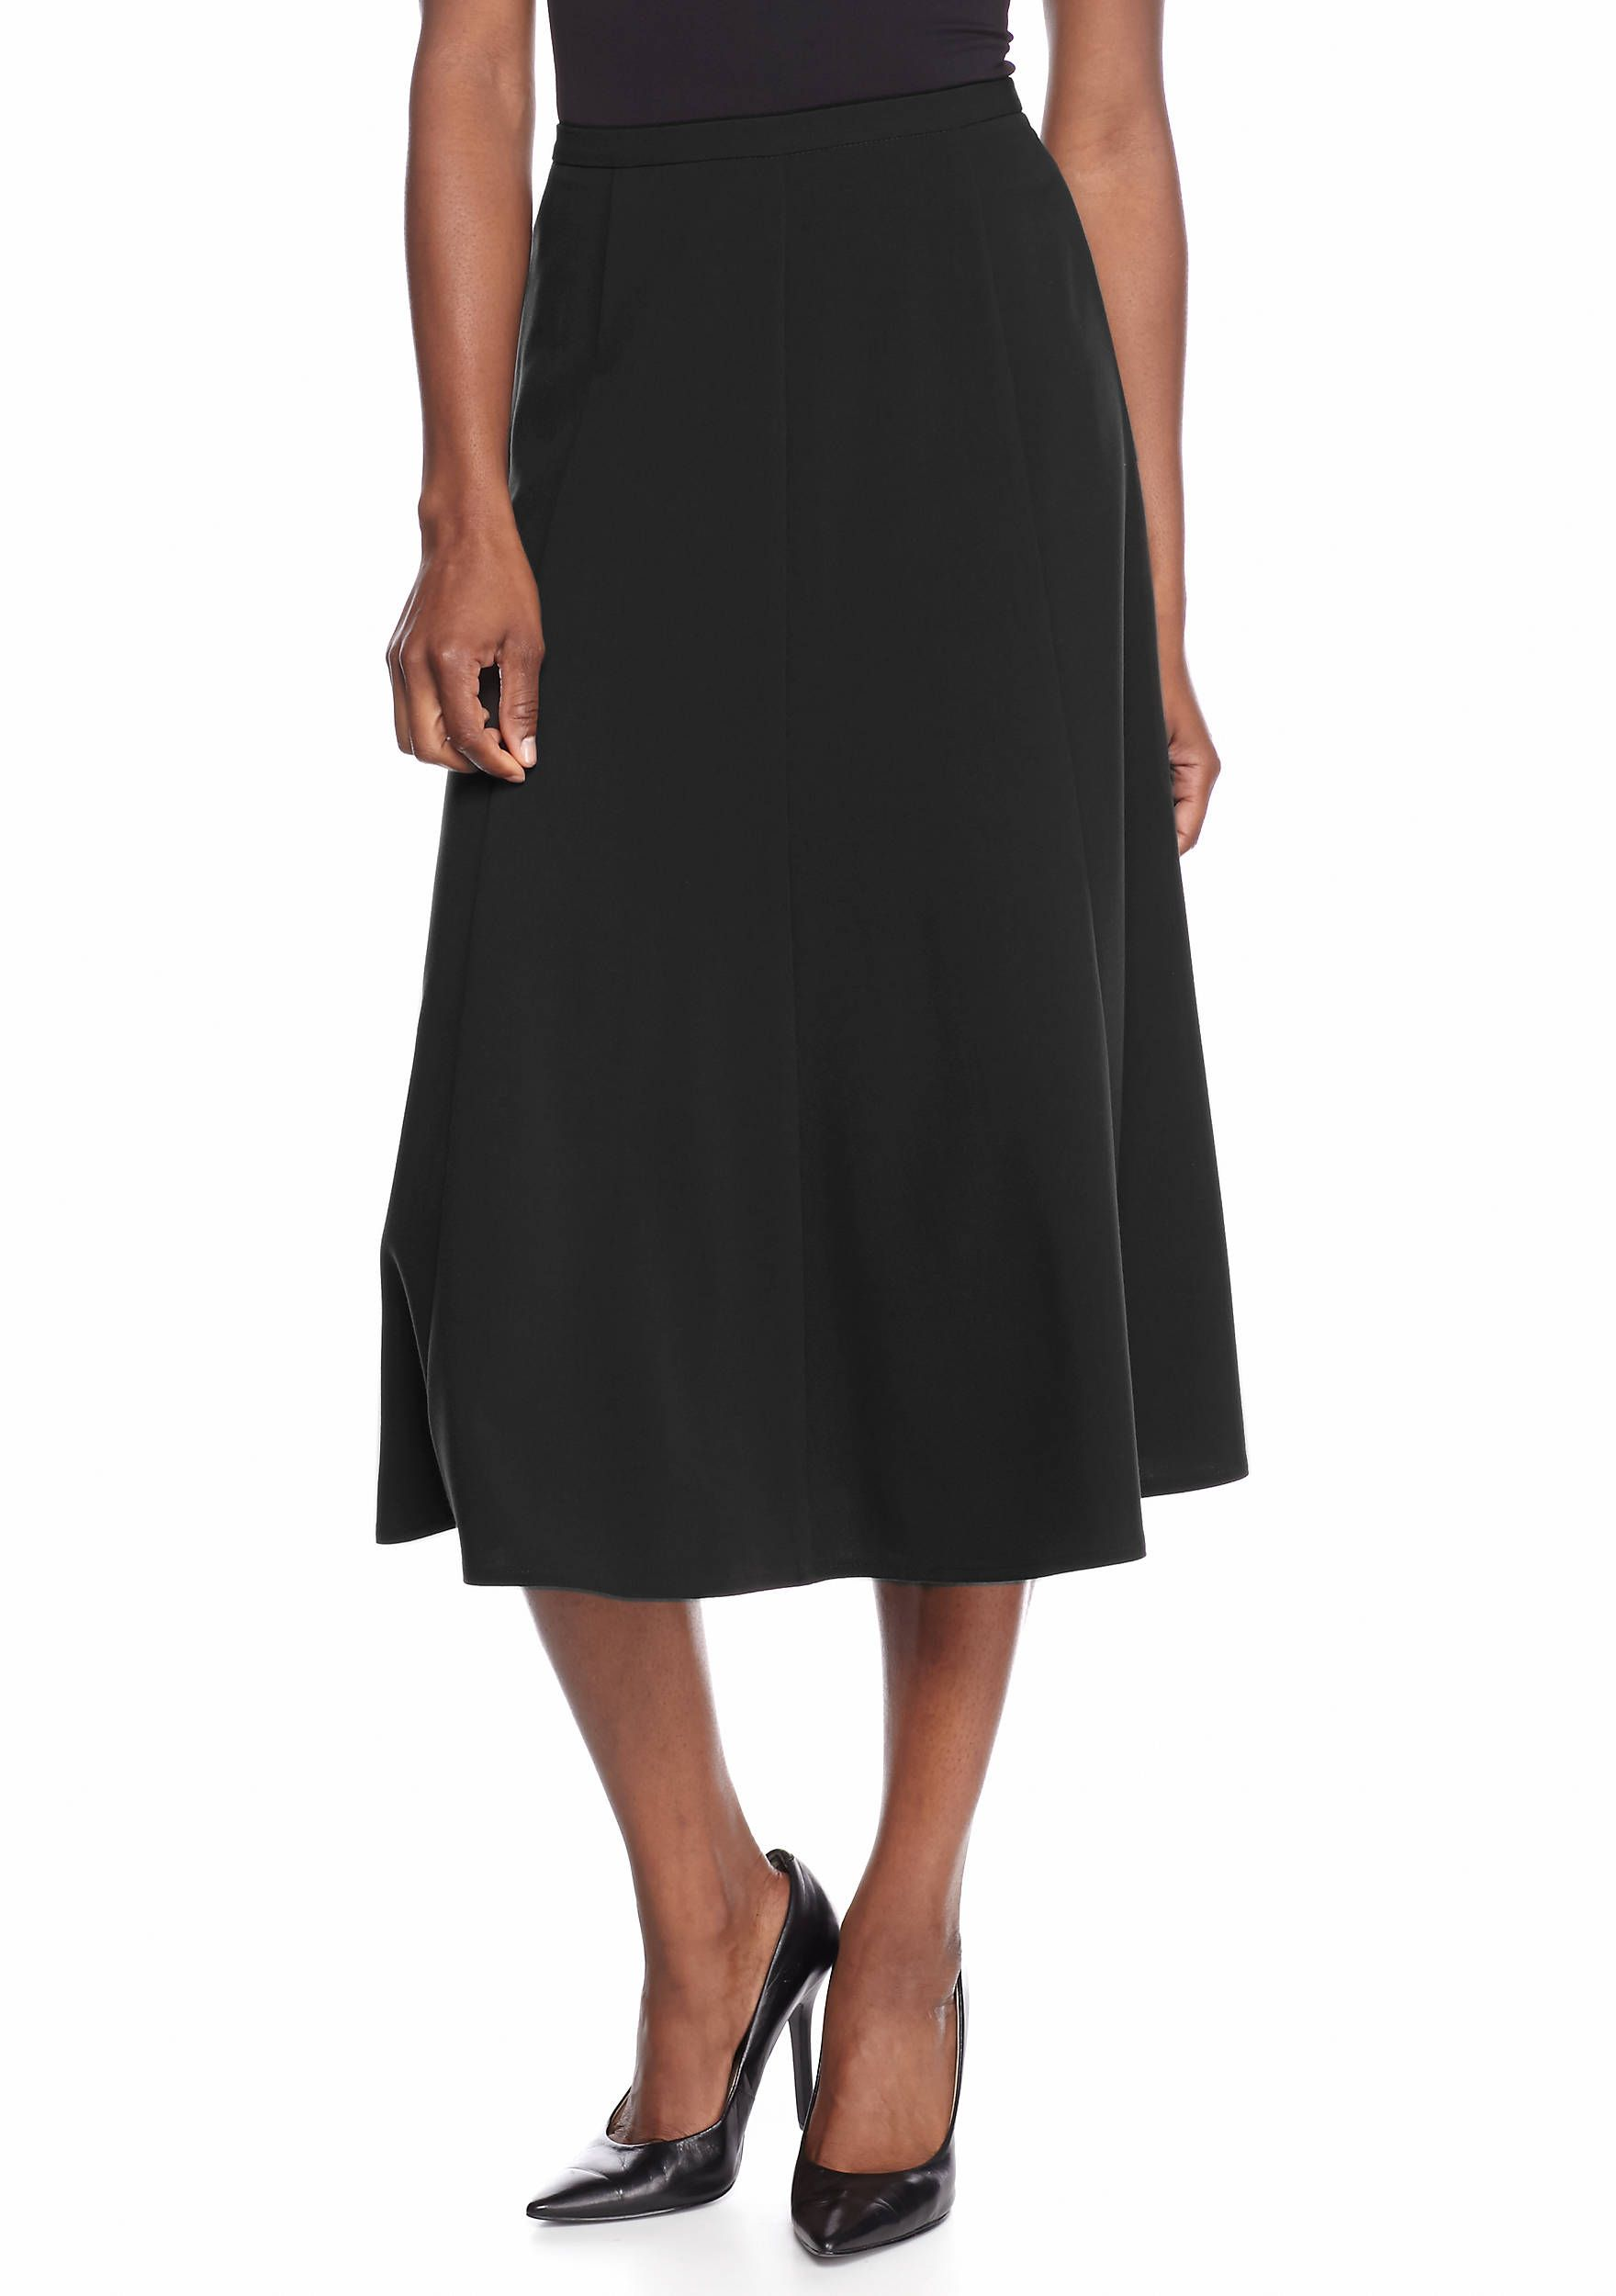 a2cb83c2bb01 Offering a chic and breezy look, this skirt is made to add an elegant touch